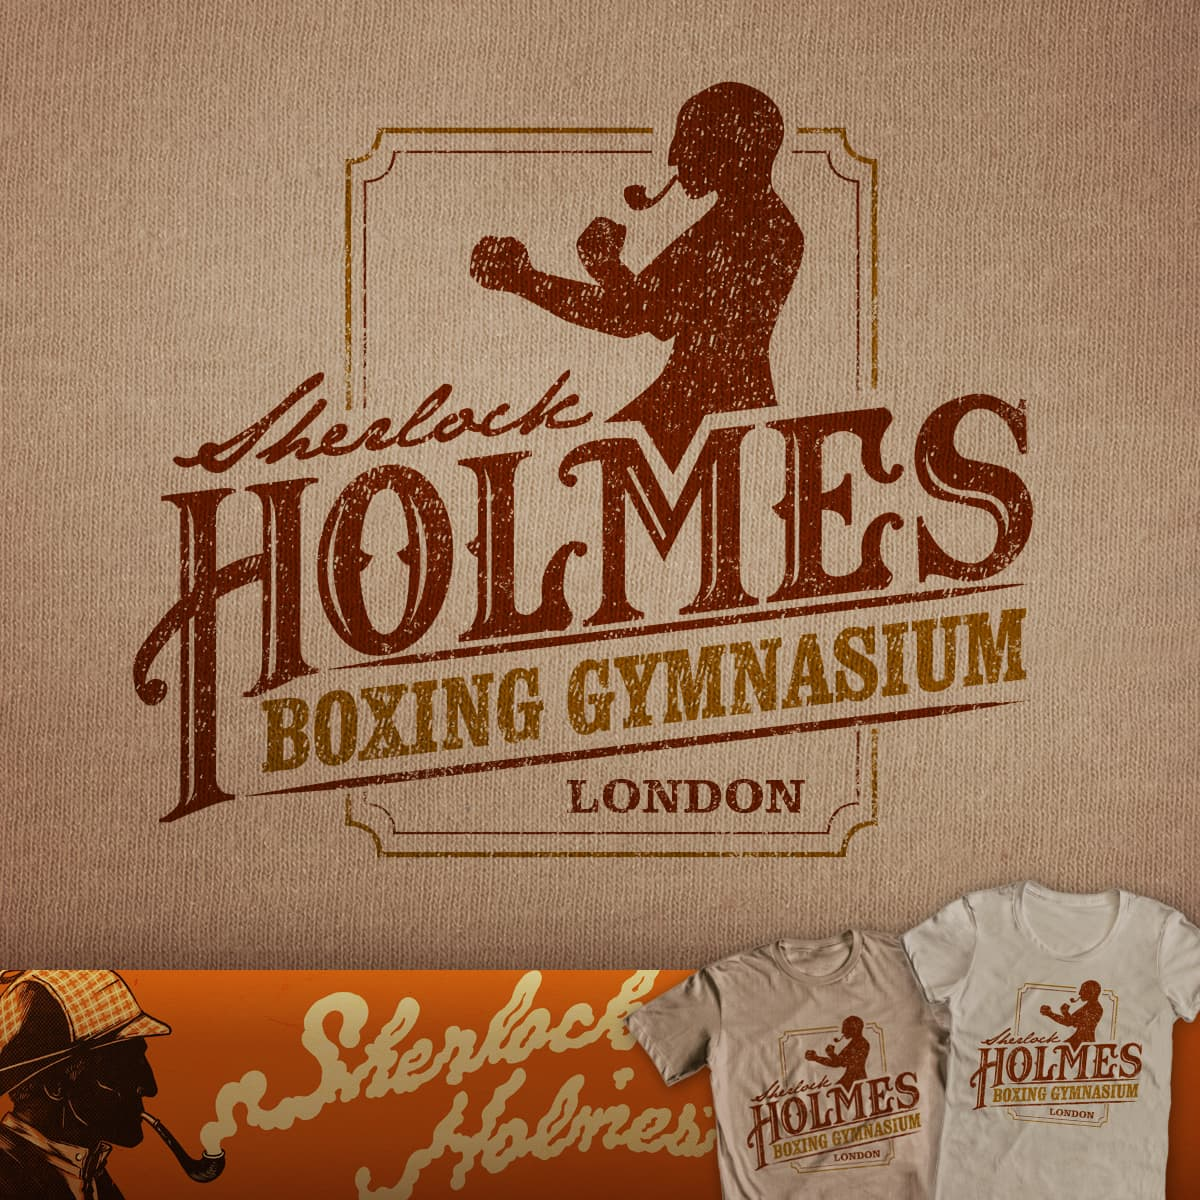 Sherlock Holmes Boxing Gymnasium by CoryFreeman on Threadless